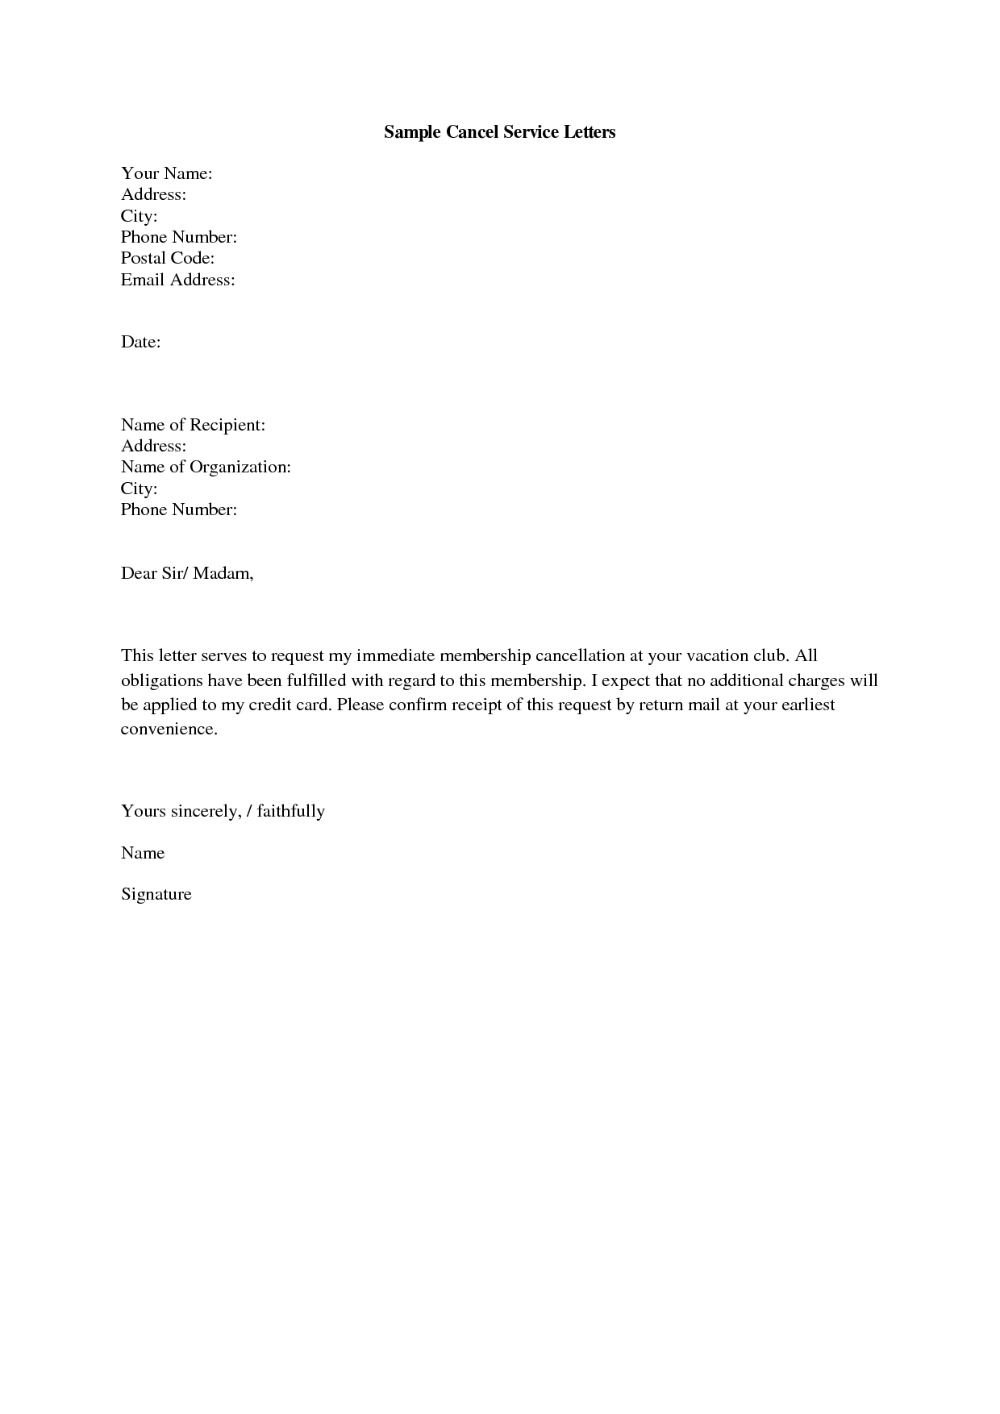 Planet Fitness Cancellation Letter Pdf : planet, fitness, cancellation, letter, Cancellation, Letter, Gplusnick, Throughout, Membership, Template, Profession…, Templates, Free,, Lettering,